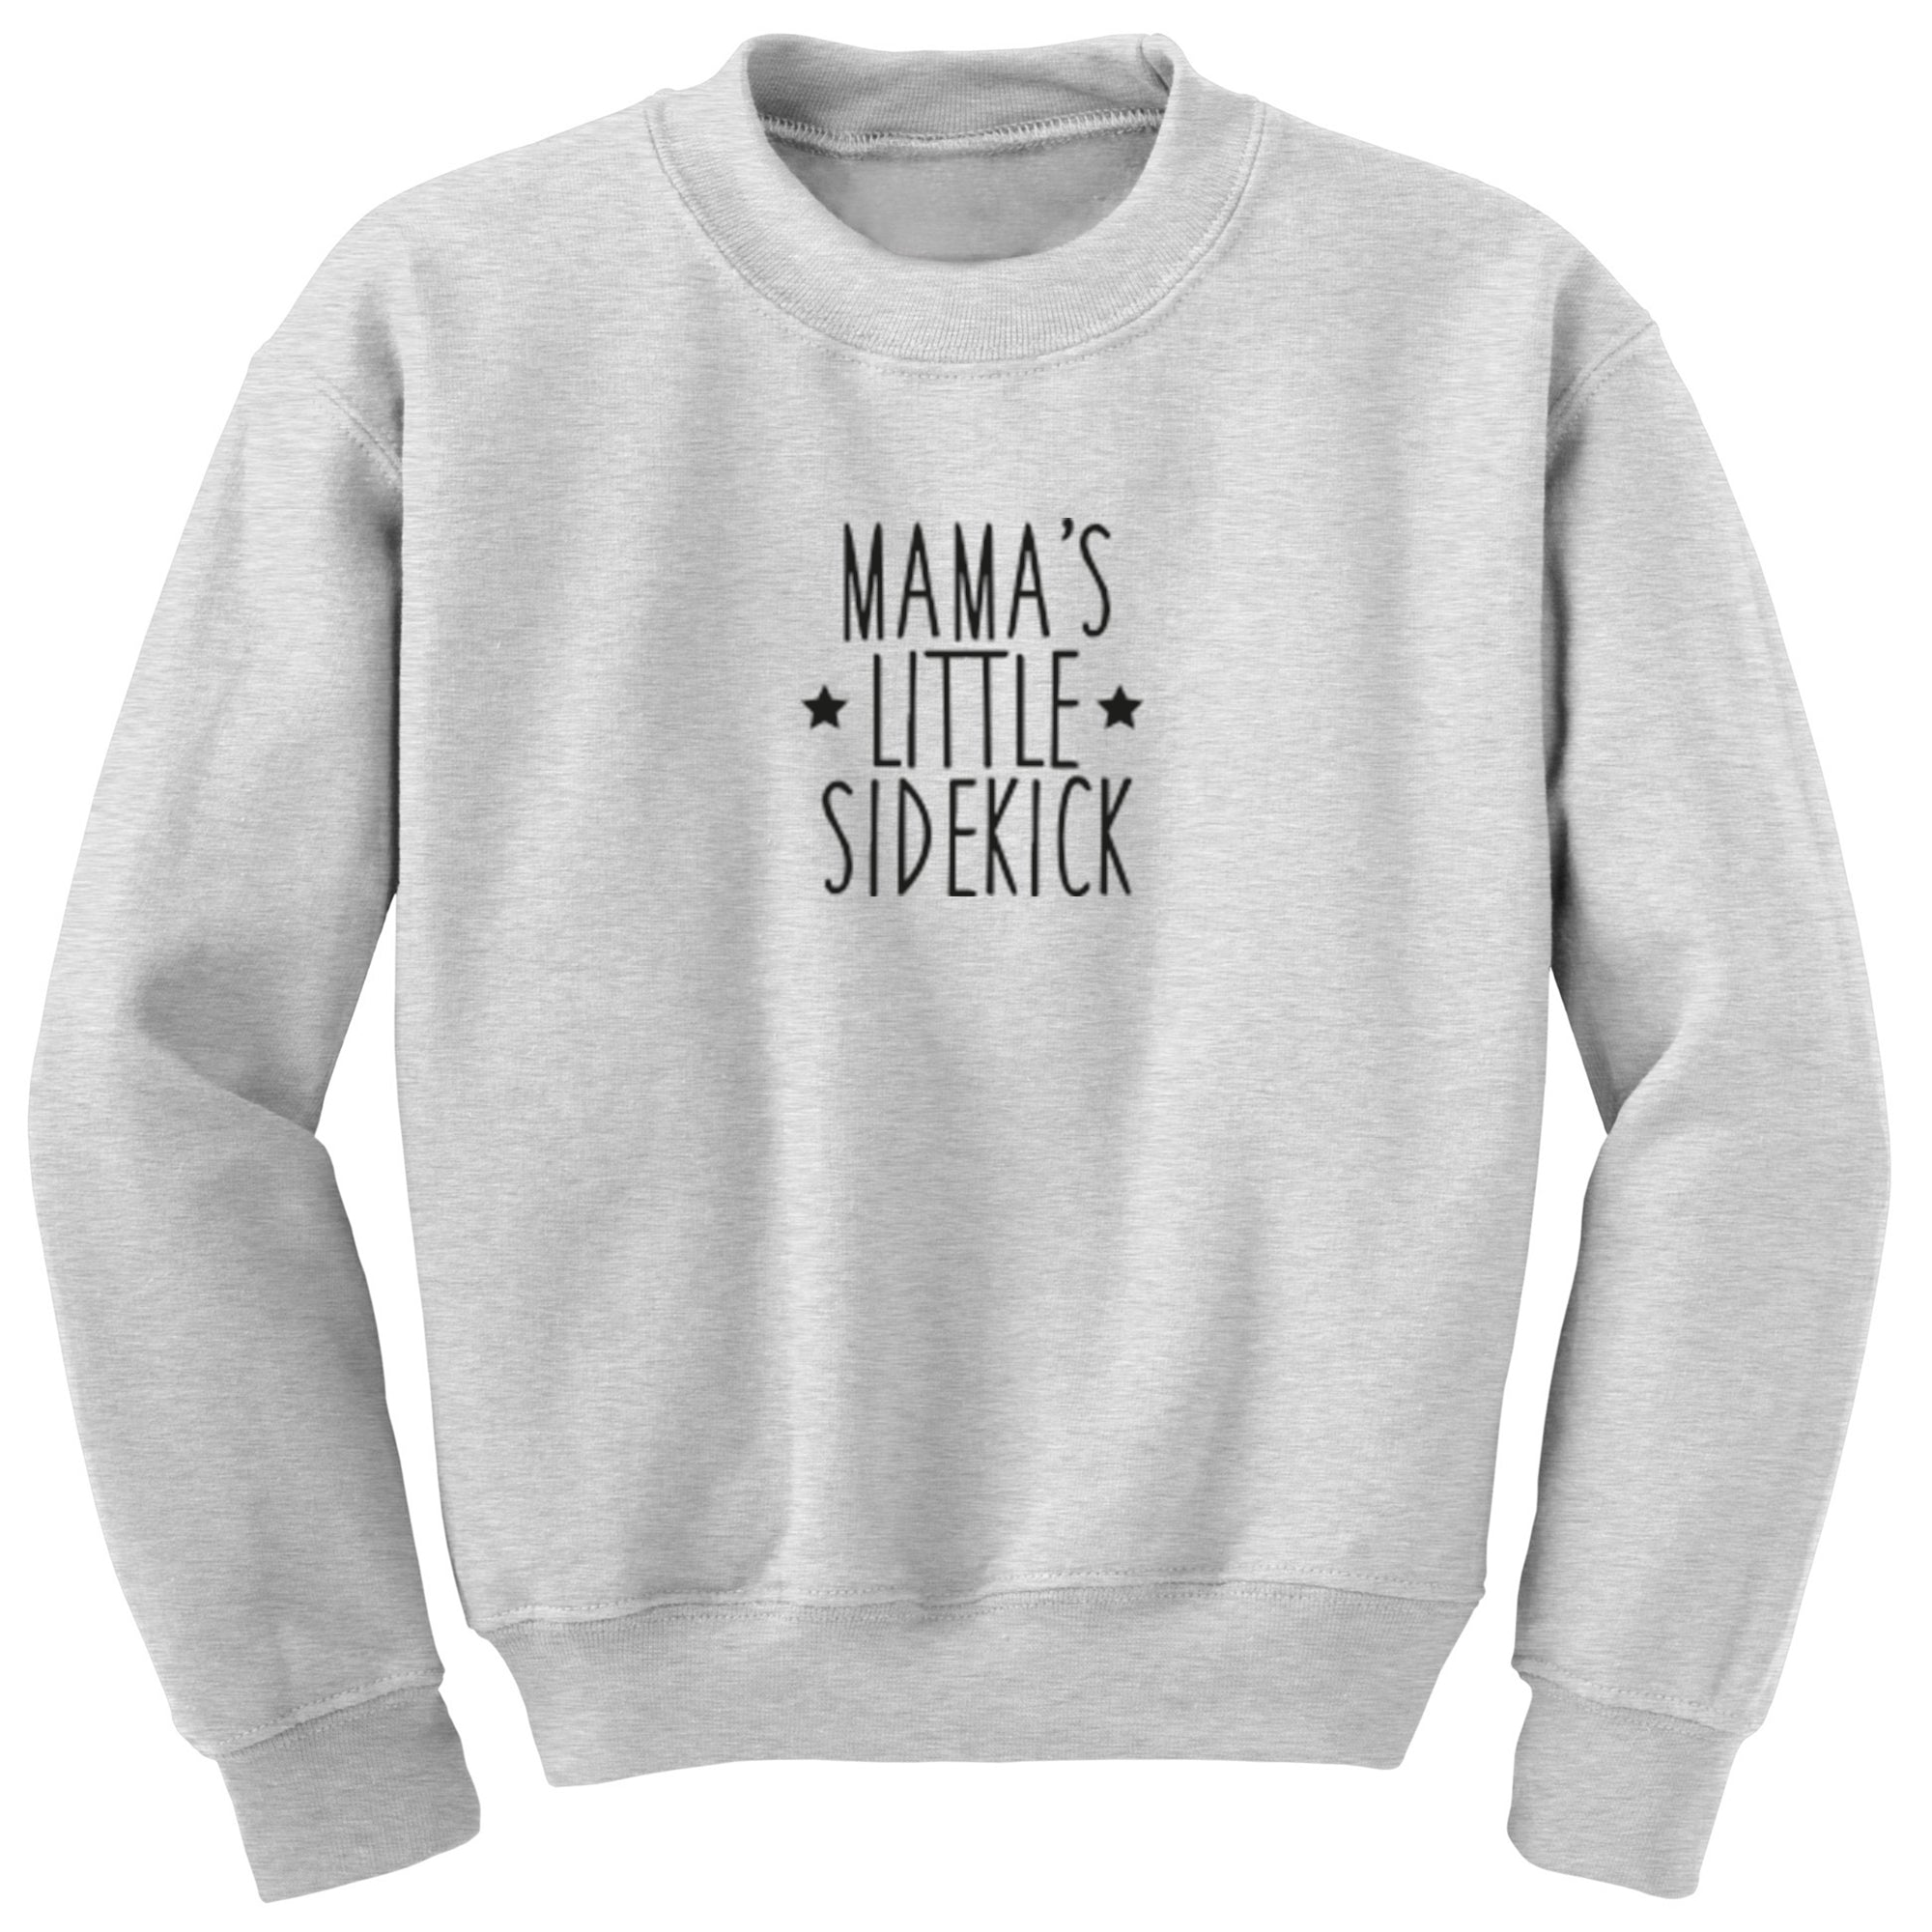 Mama's Little Sidekick Childrens Ages 3/4-12/14 Printed Jumper S0902 - Illustrated Identity Ltd.